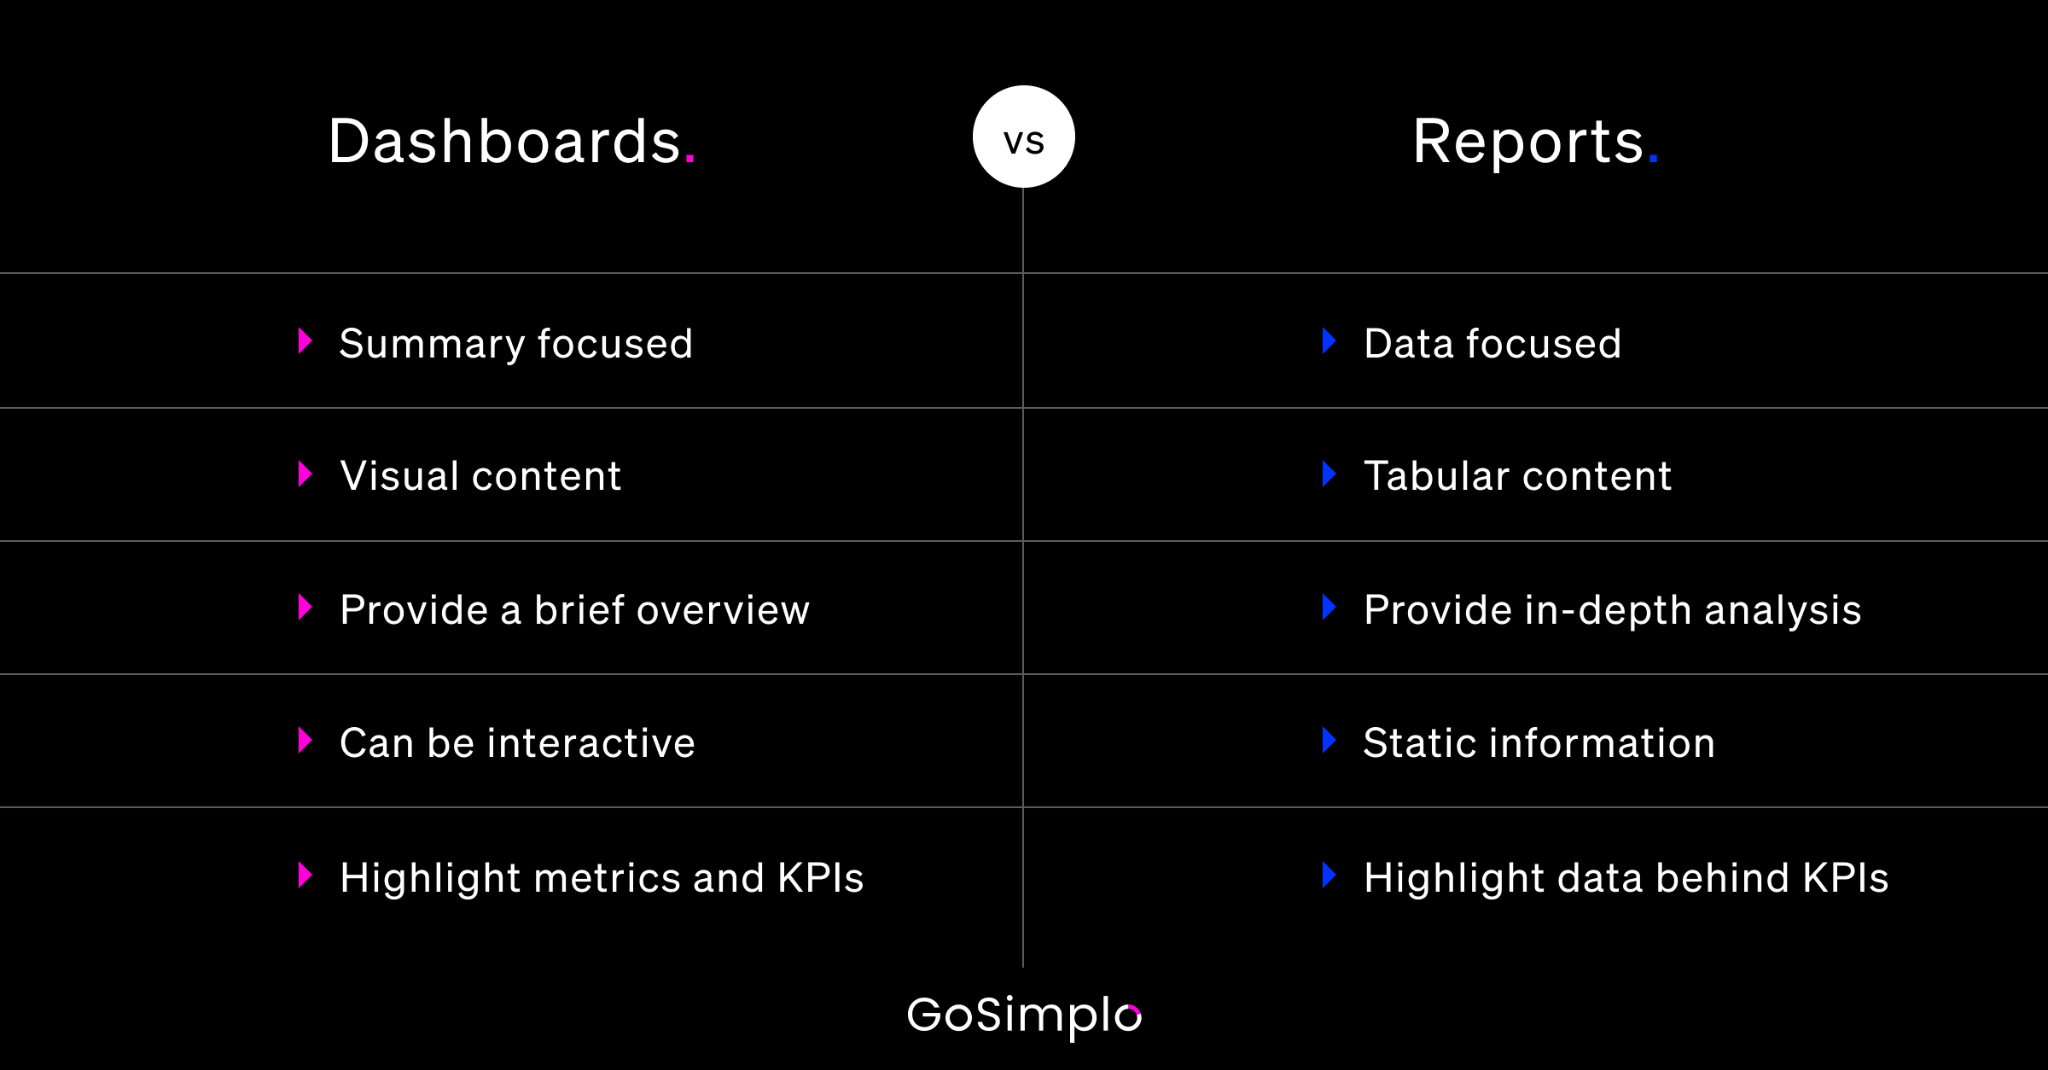 graphic representation of the differences between dashboards and reports. White text on black background.